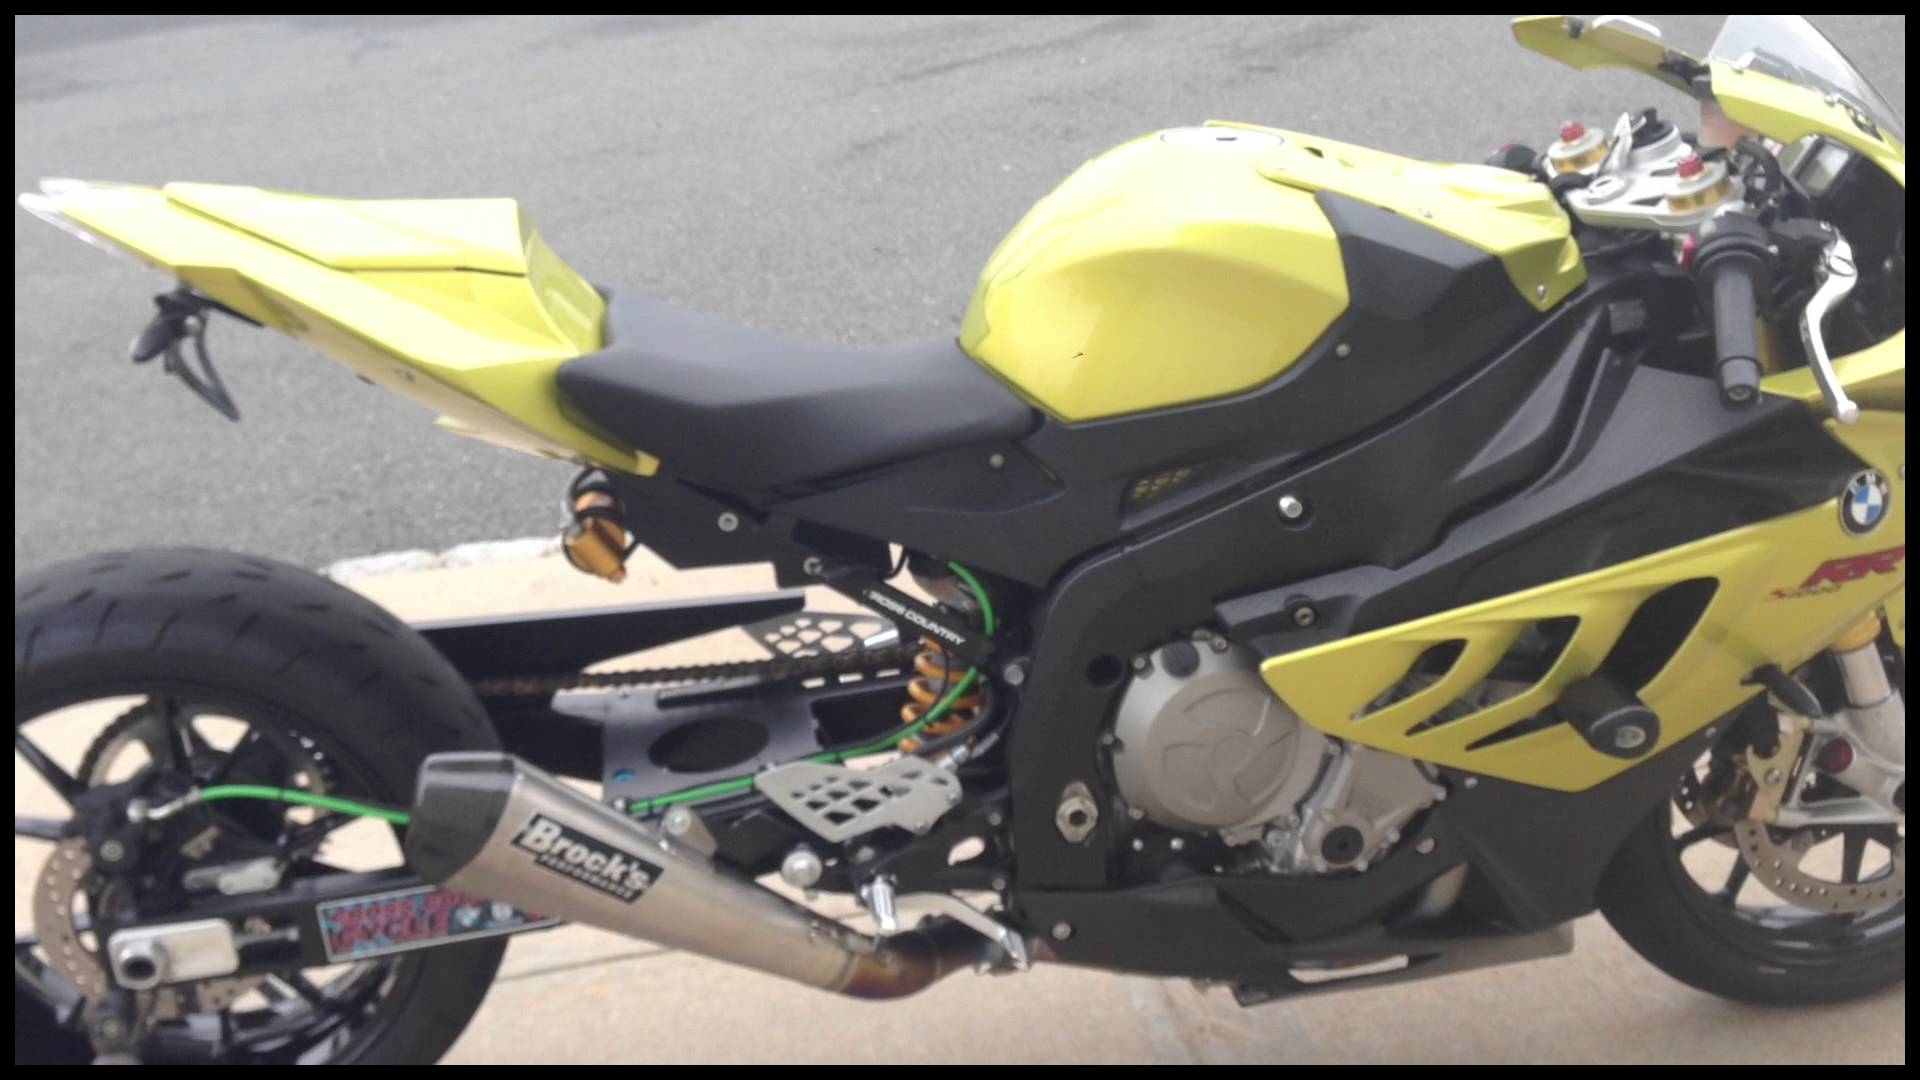 BMW S1000RR Drag Bike For Sale ly at Cross Country Cycle in Metuchen NJ